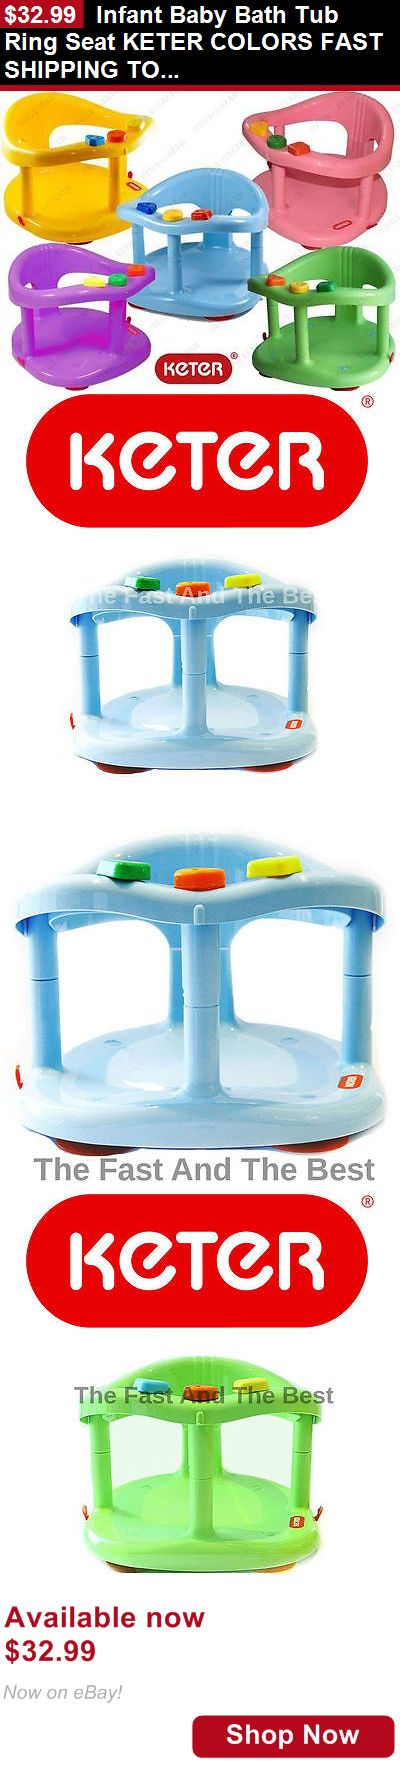 Baby Bath Tub Seats And Rings: Infant Baby Bath Tub Ring Seat Keter Colors Fast Shipping To Usa New In Box BUY IT NOW ONLY: $32.99